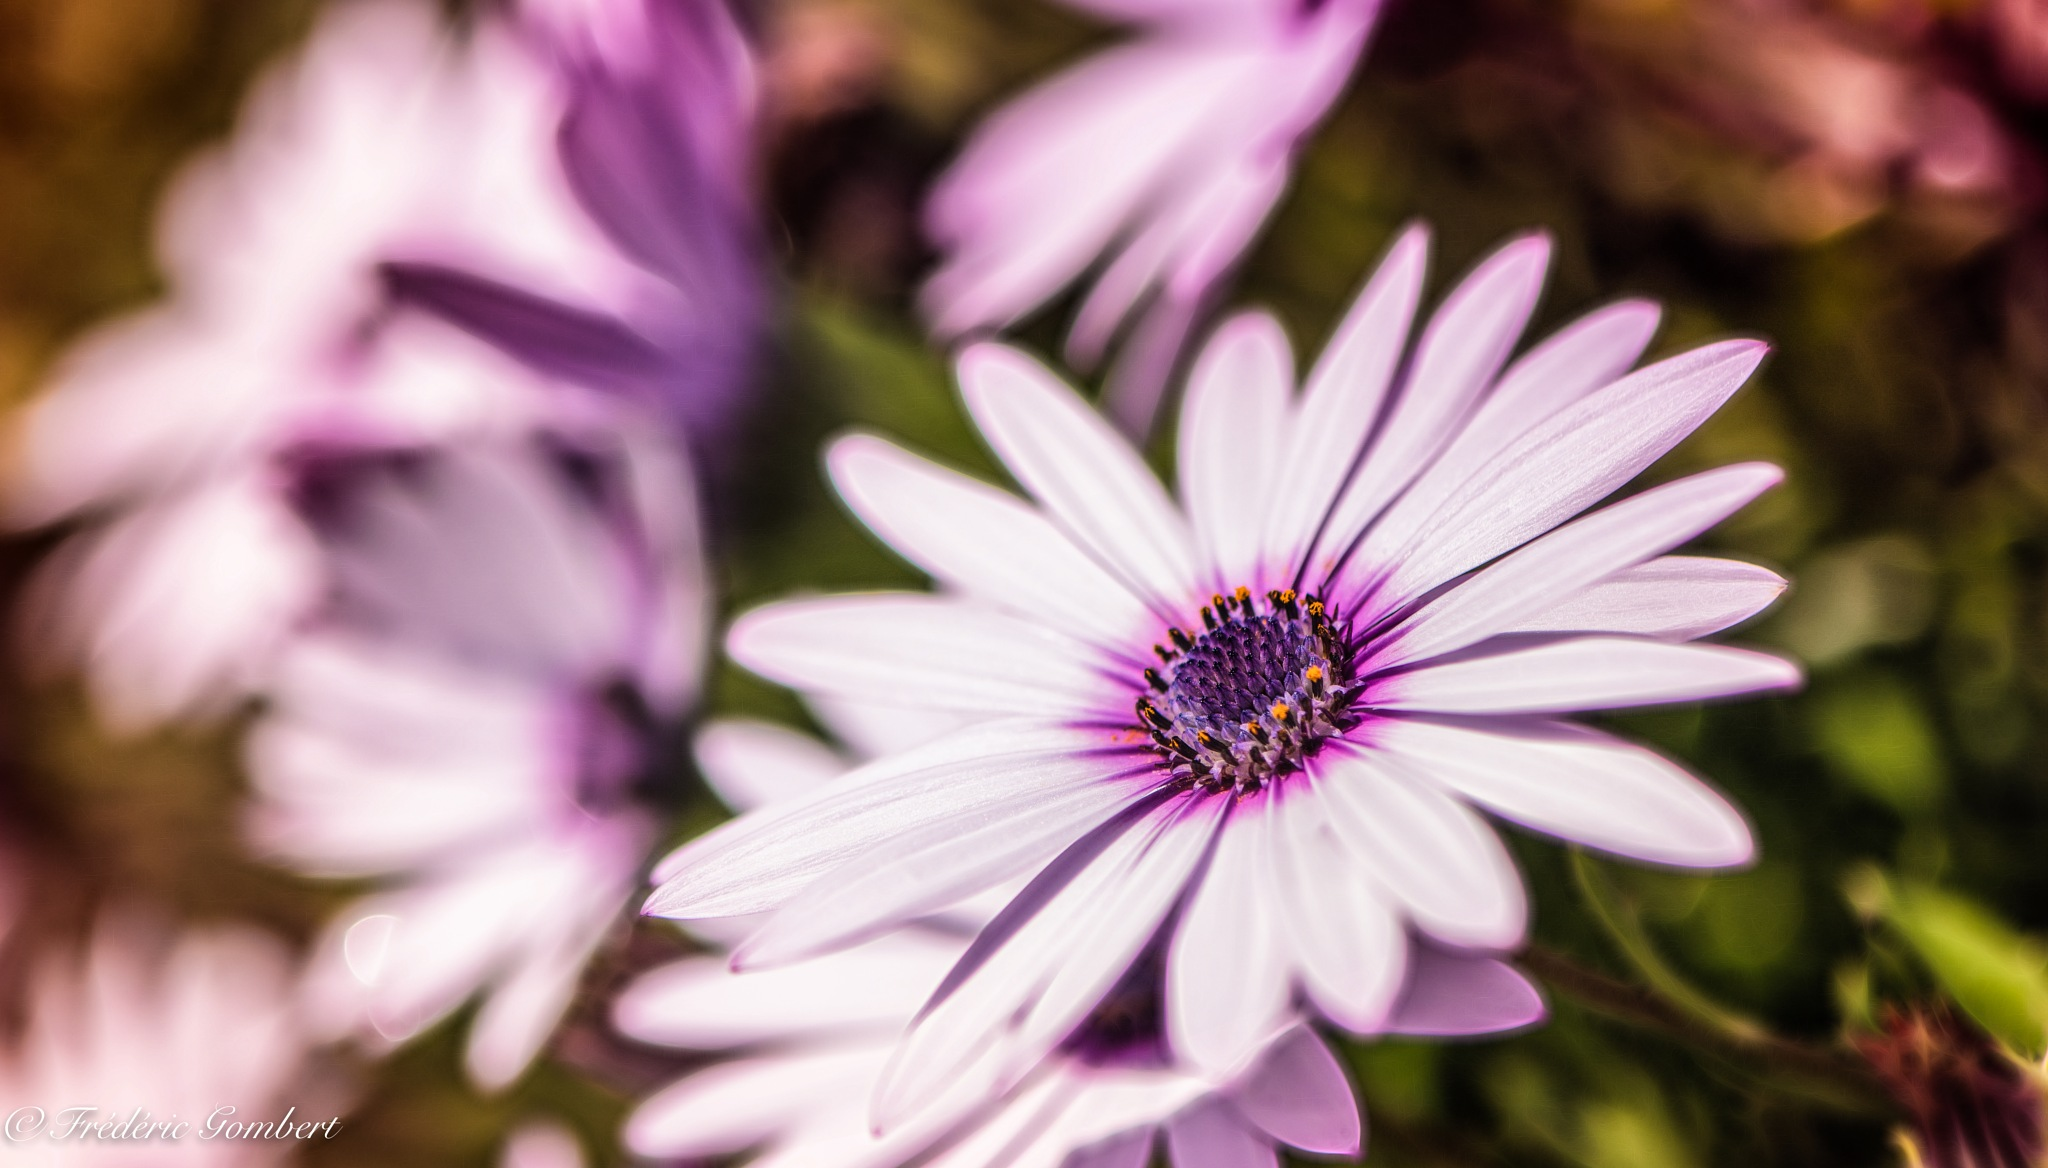 White  by Frederic Gombert